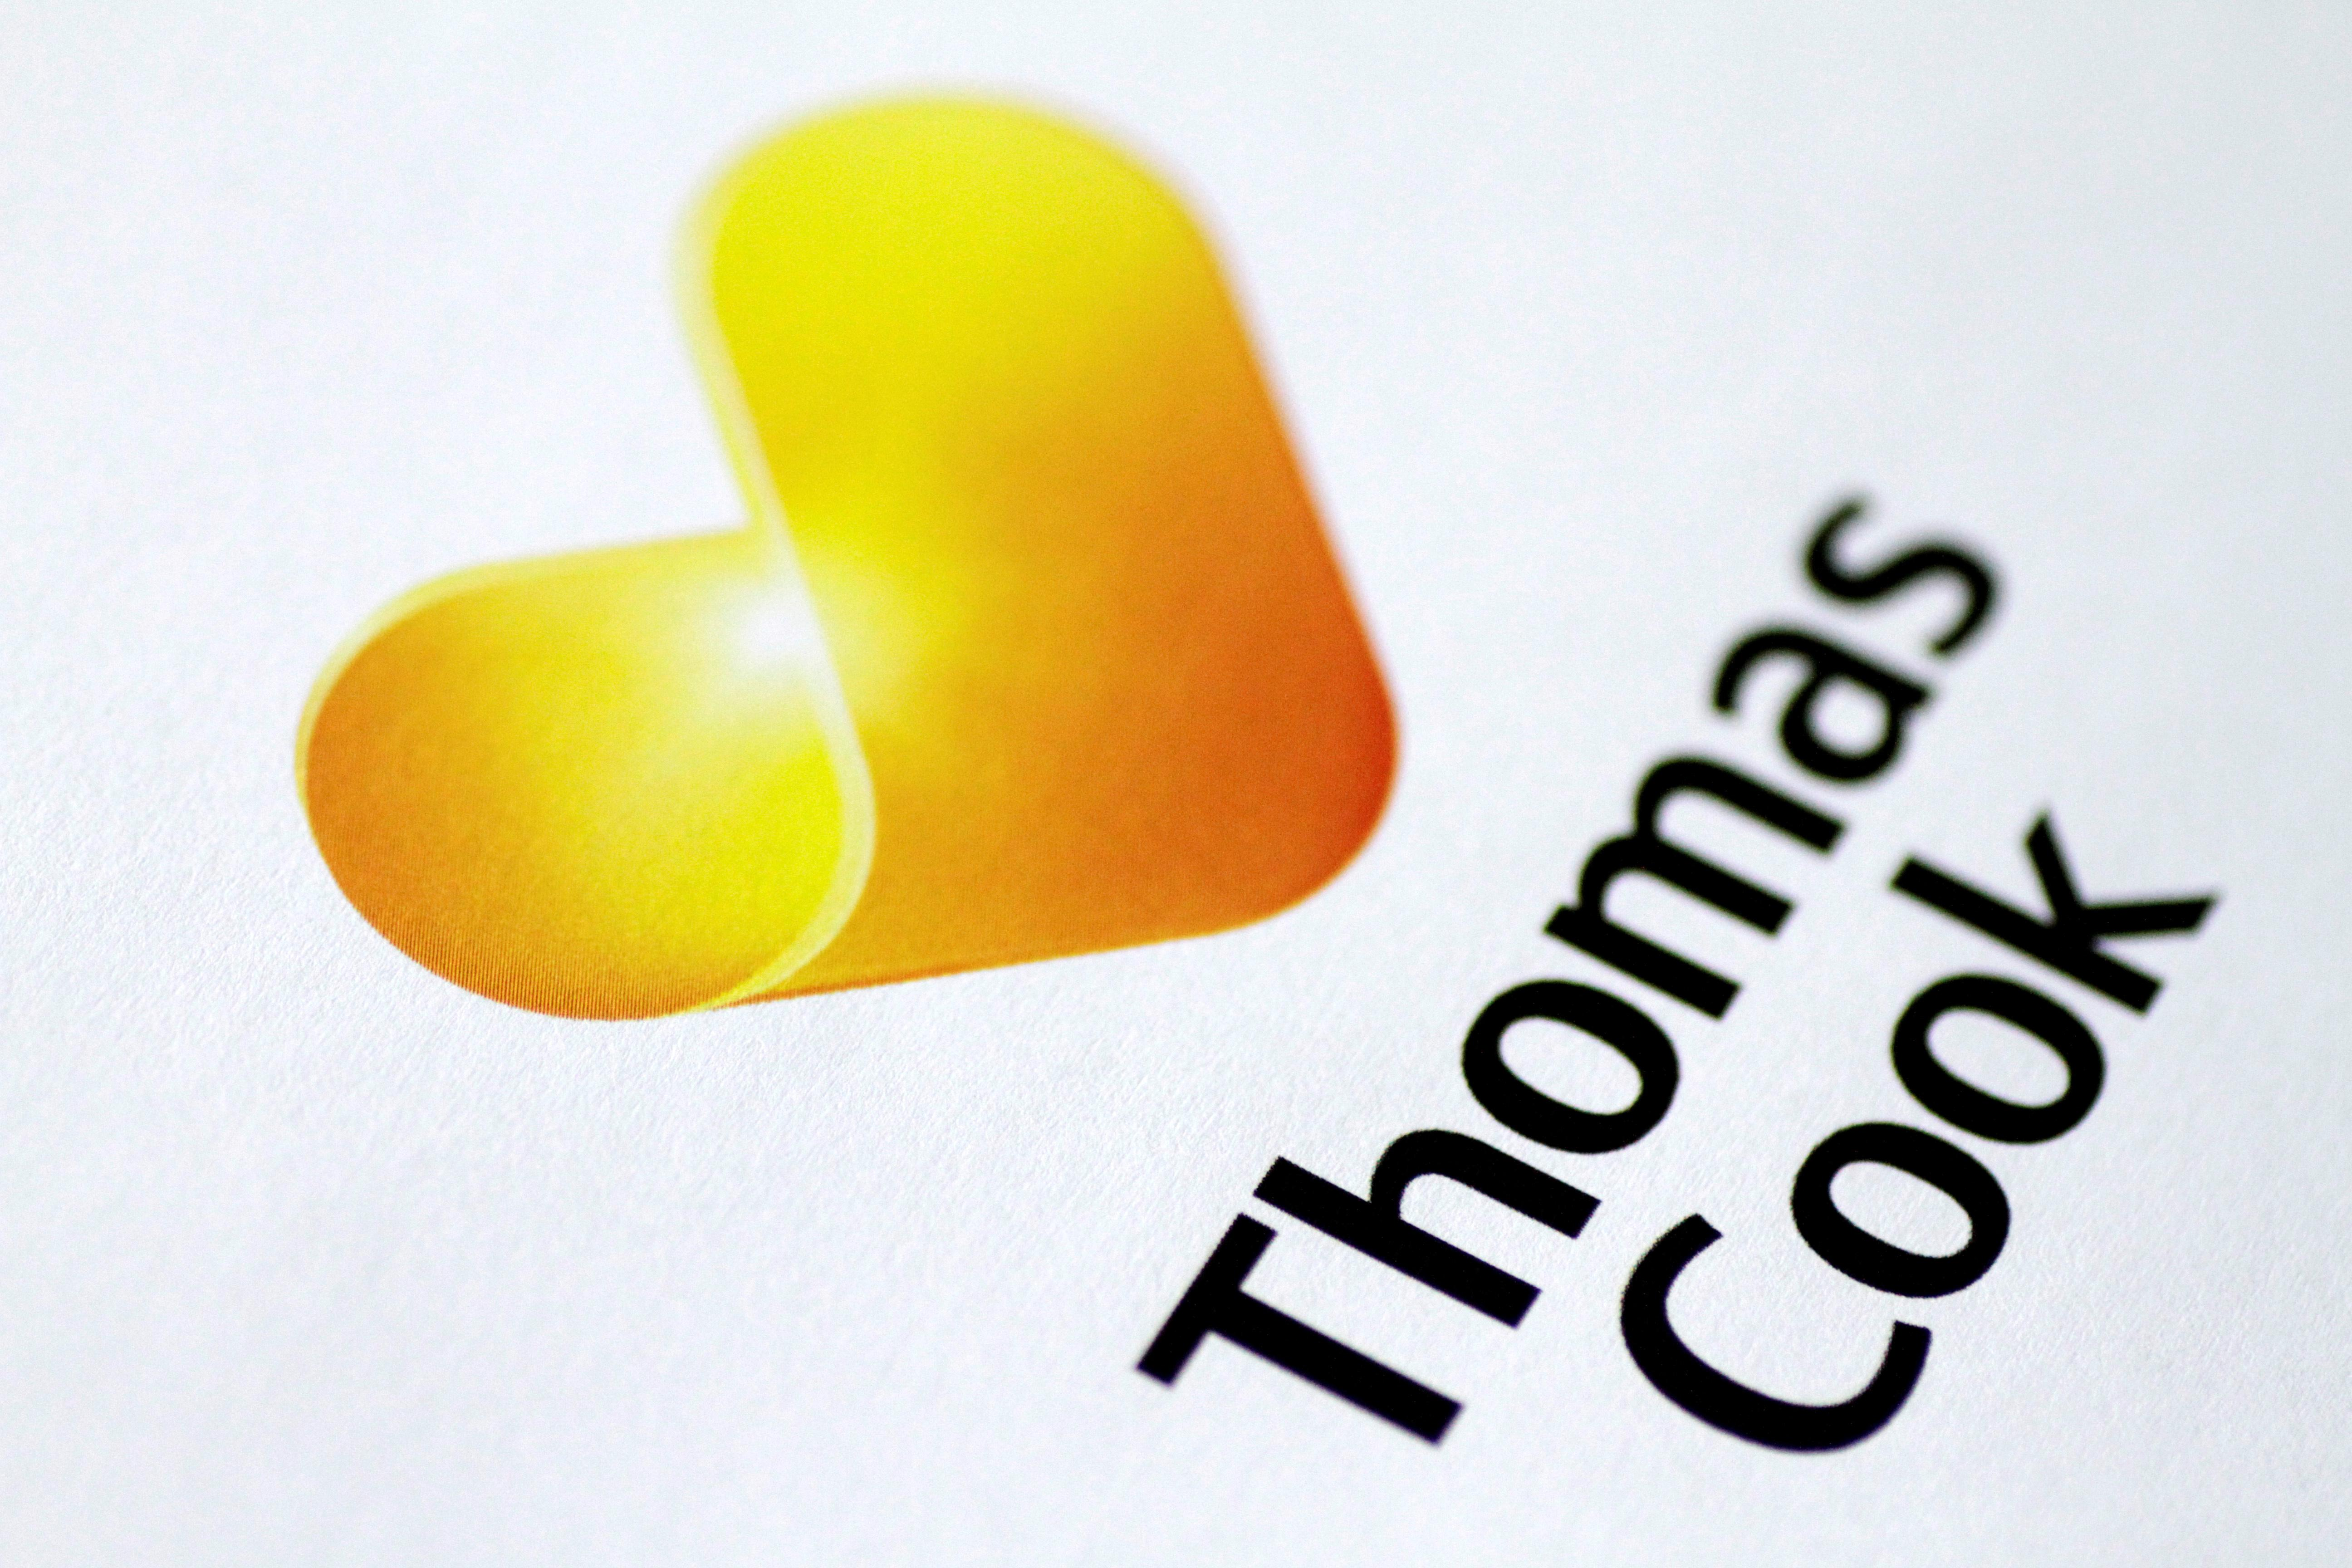 British travel firm Thomas Cook collapses, stranding hundreds of...